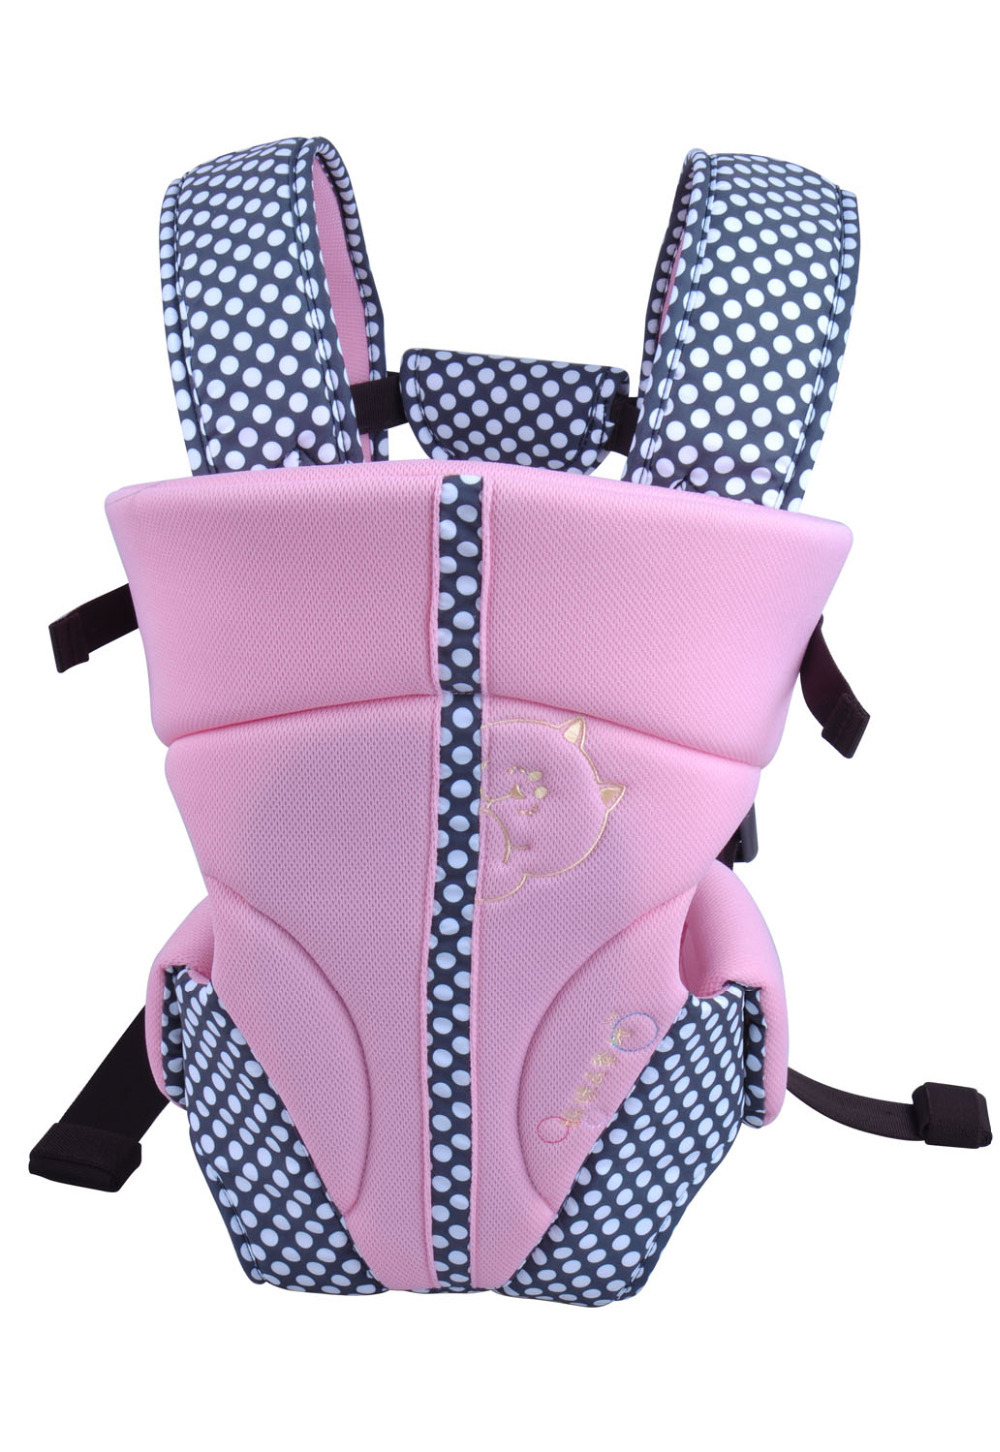 6 Color! Breathable Inserts Floral Print Baby Carriers Convenient Baby Slings Toddler Wrap Backpack Infant Sling Harness Carrier